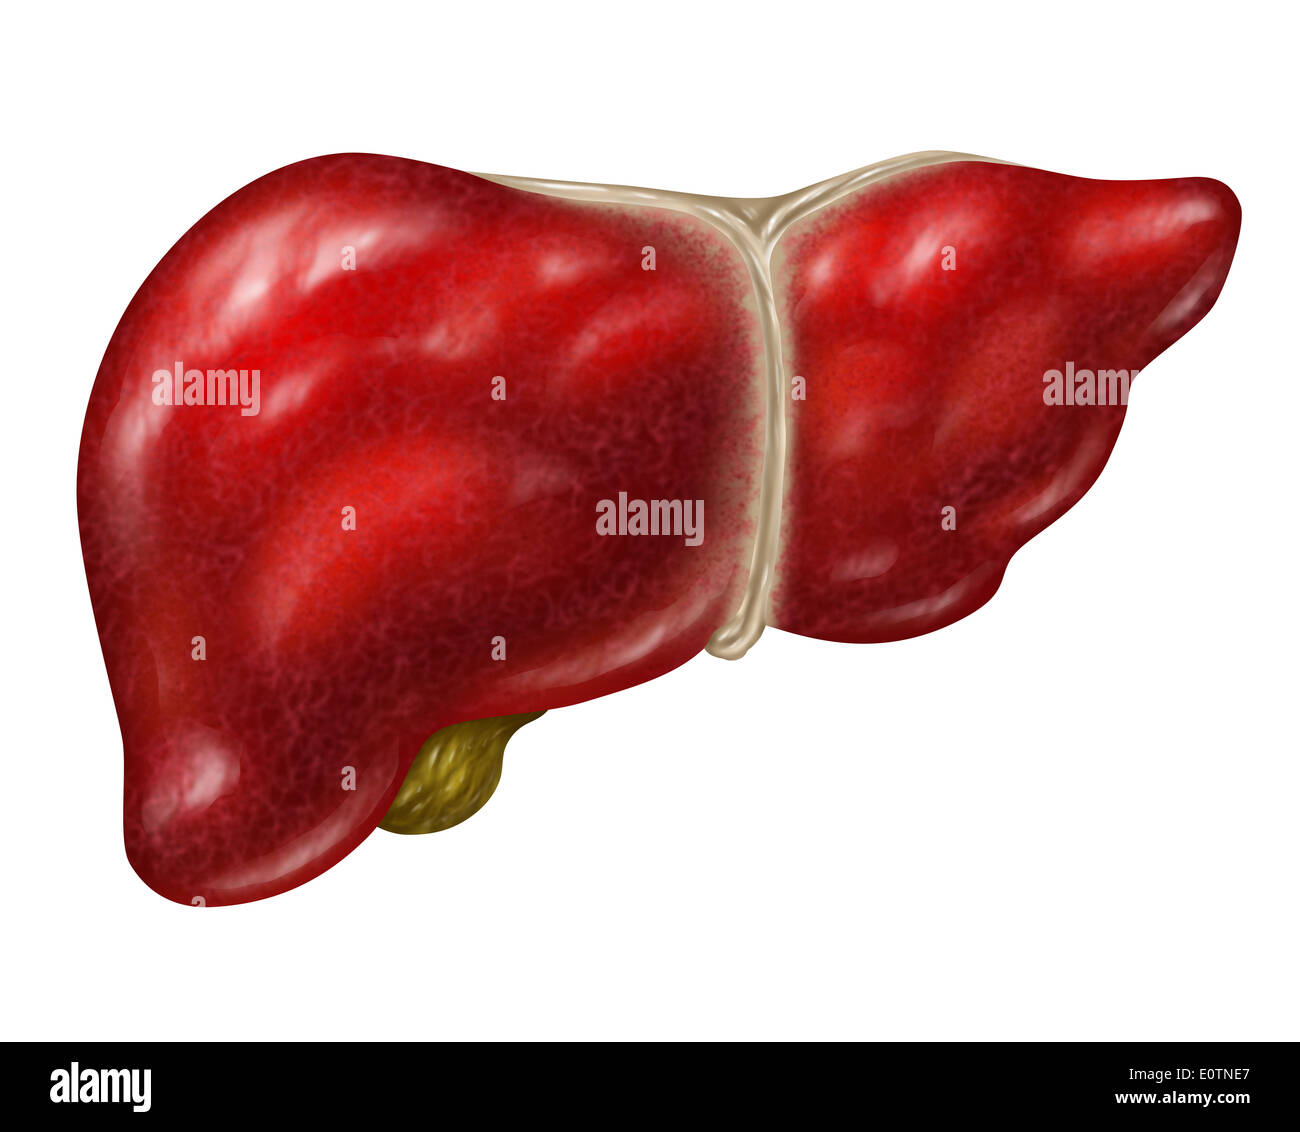 Human Liver Body Part Isolated On A White Background With The Gall